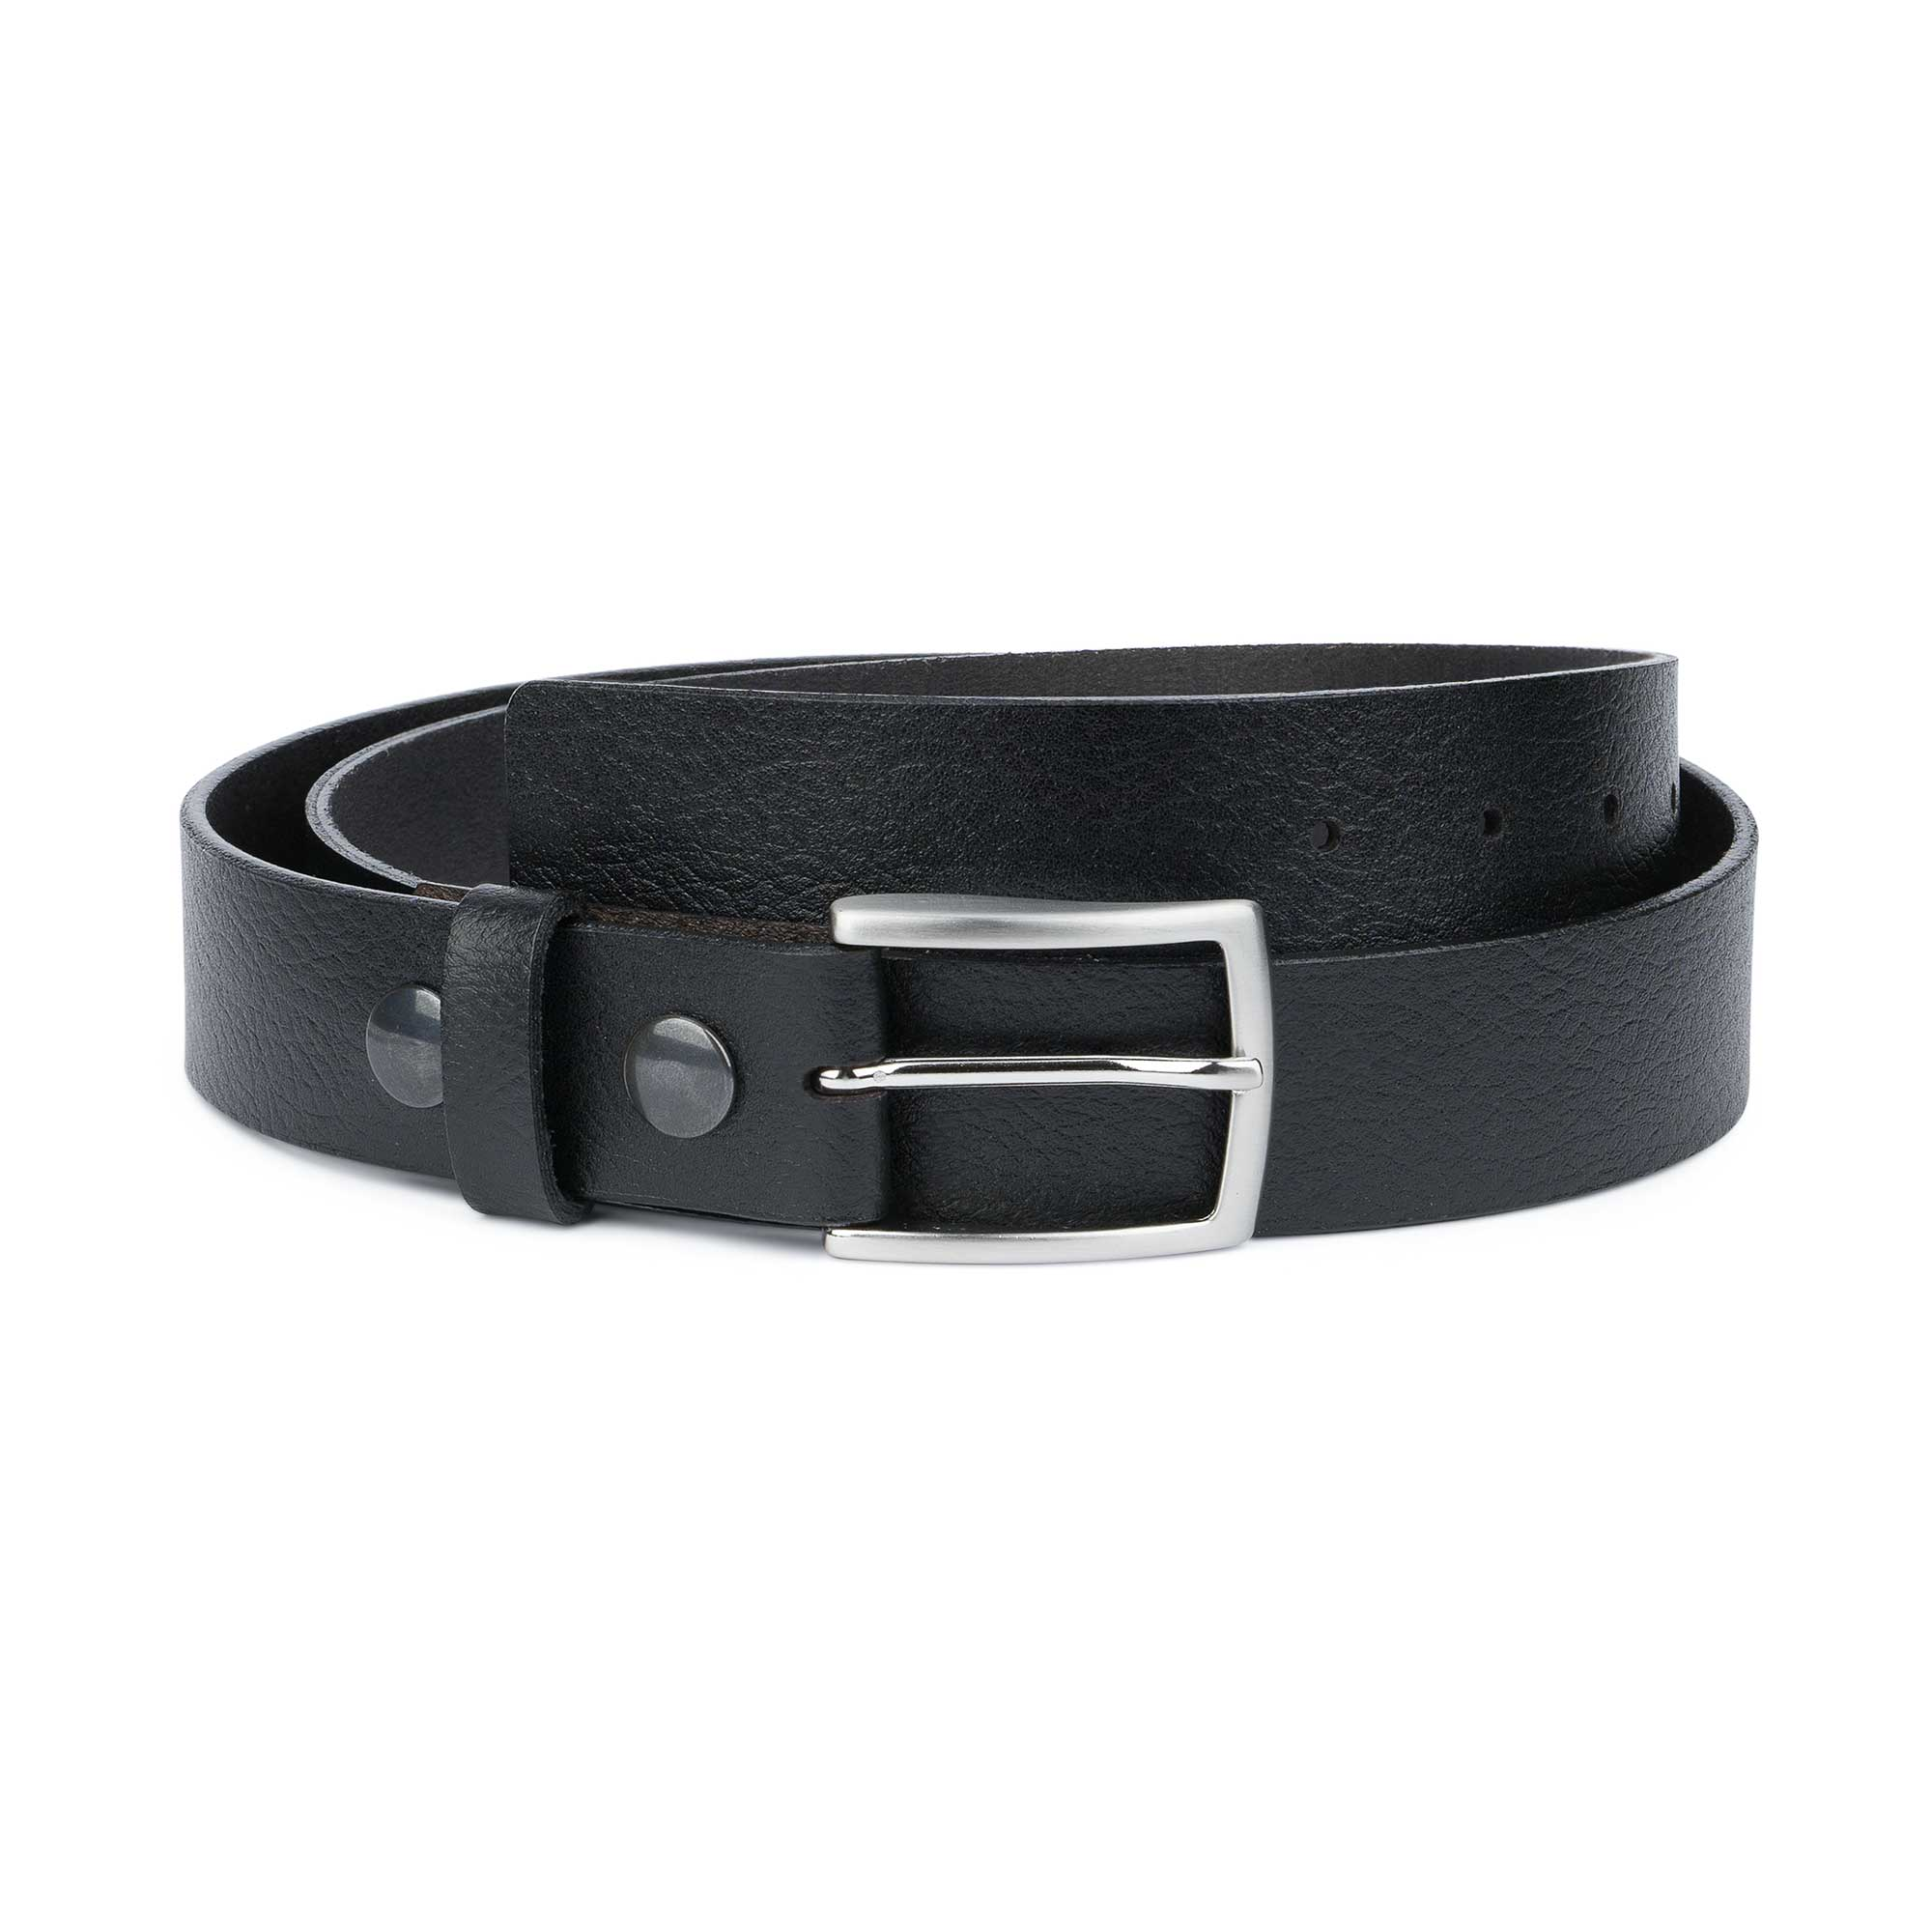 Details about Belt With Removable Buckle Interchangeable Men's Belts Black leather Snap on